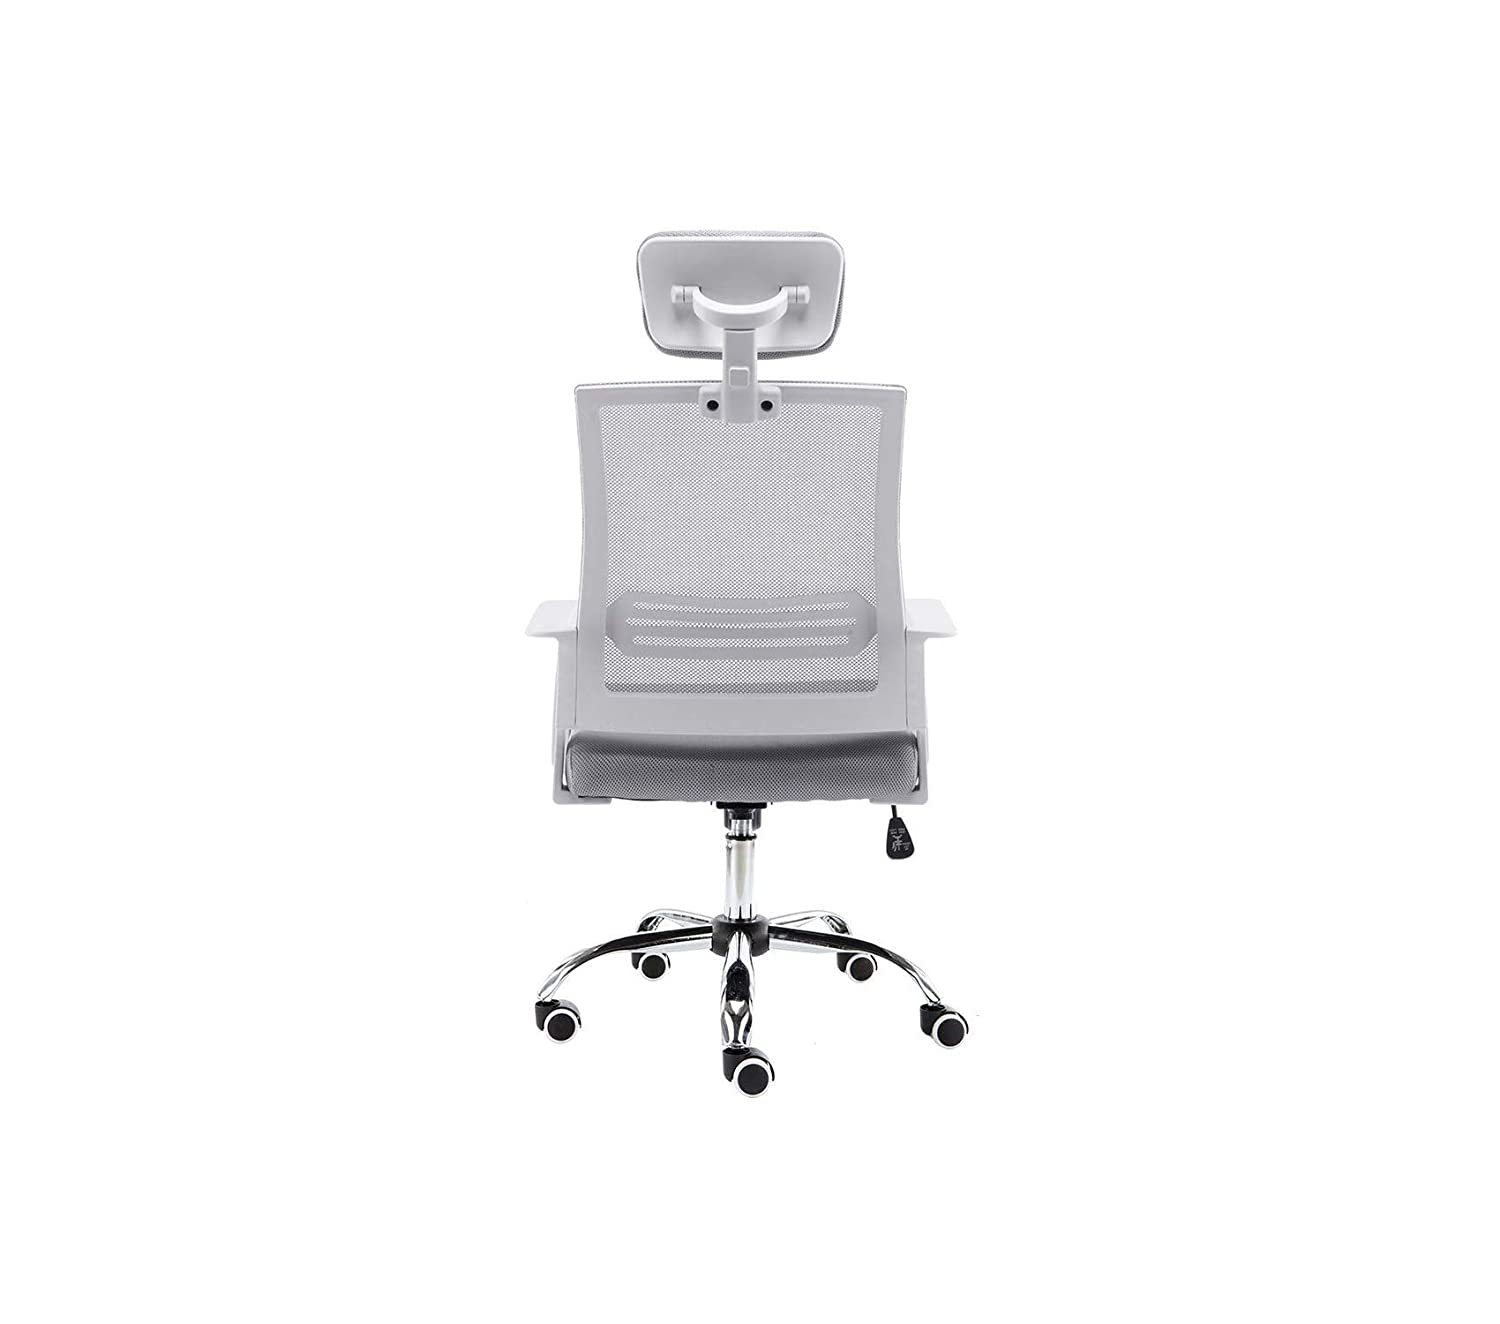 Back Office Chair White//Gray Decor Comfy Living Furniture Mоdеrnhоmе Deluxe Premium Collection Home WHGRAY Metro Mid